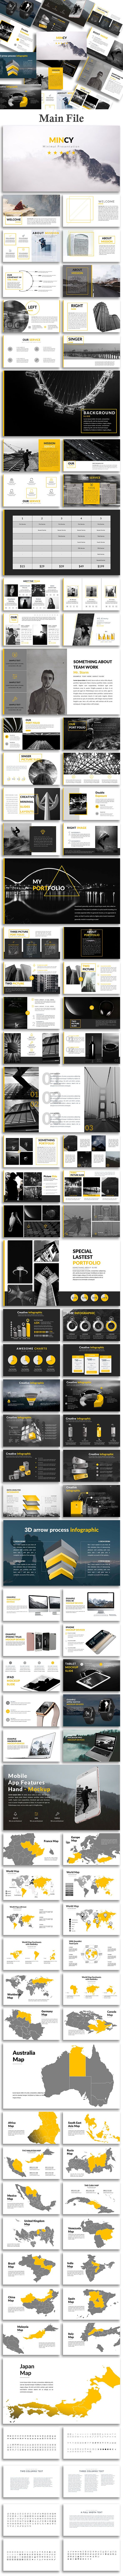 Mincy - Creative PowerPoint Template - Creative #PowerPoint #Templates Download here: https://graphicriver.net/item/mincy-creative-powerpoint-template/19575294?ref=alena994